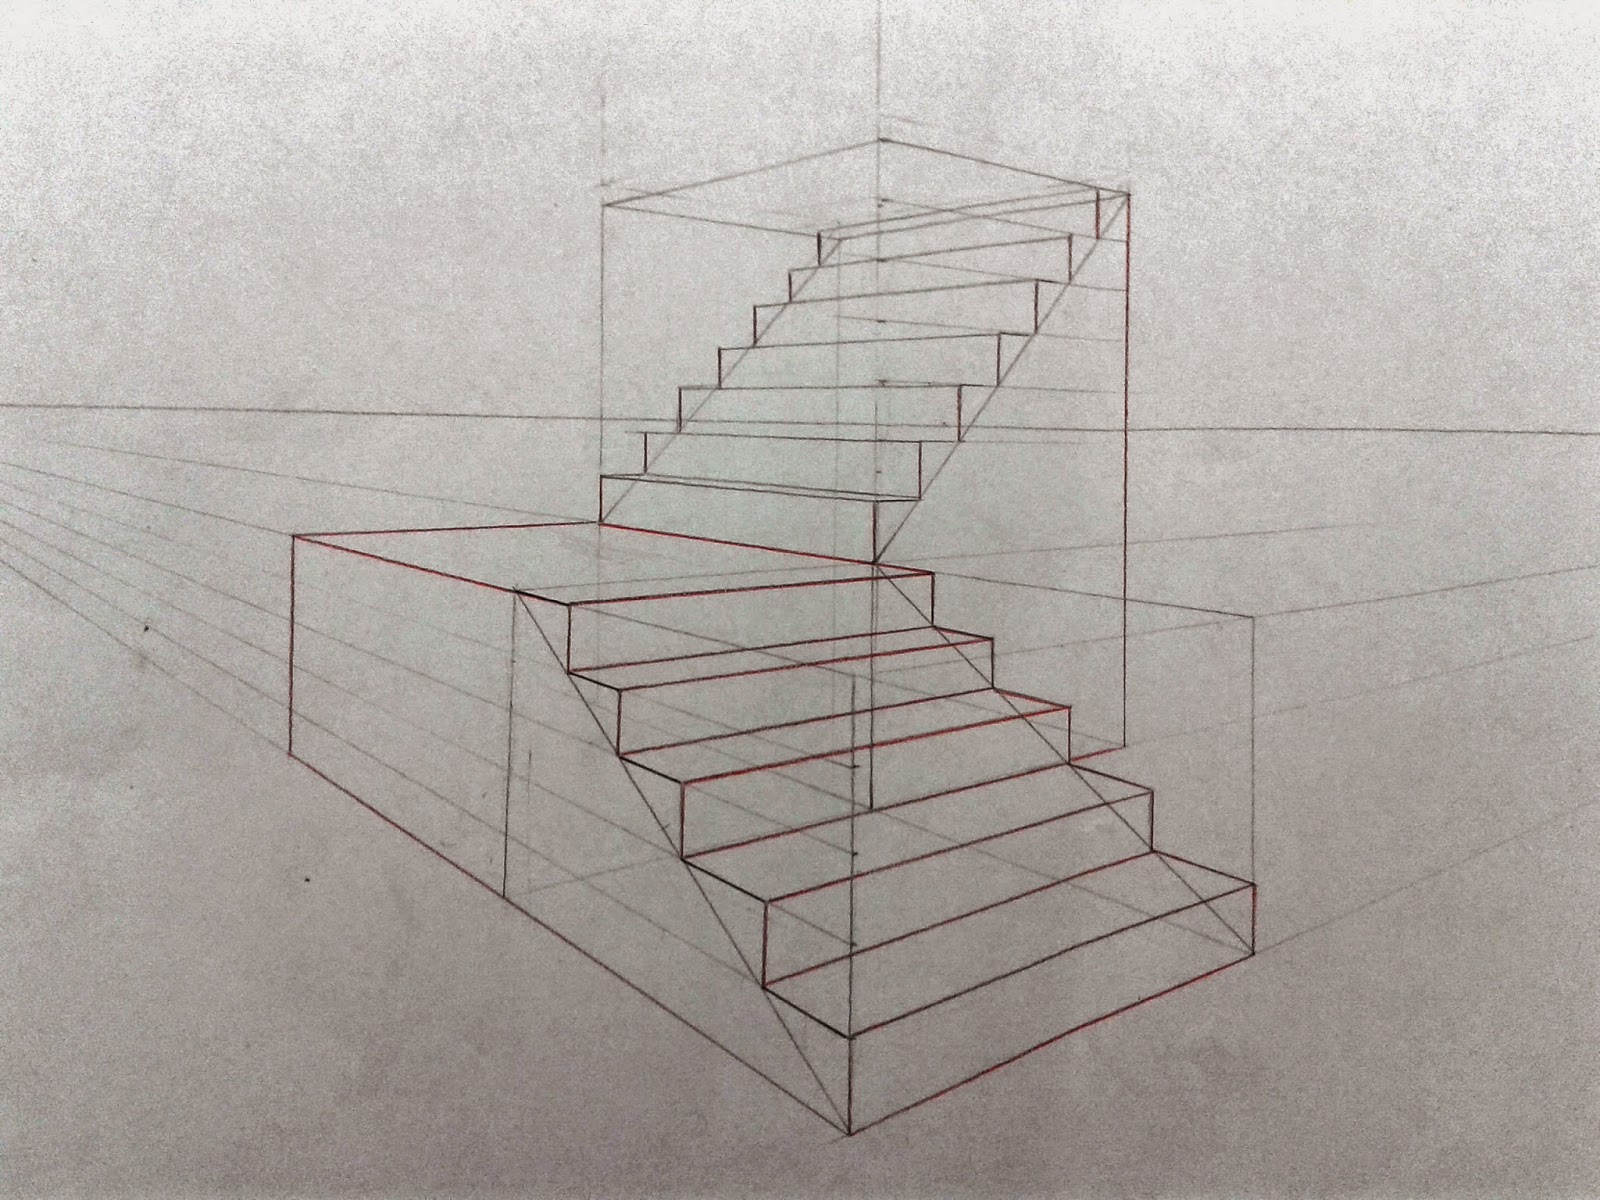 Perspective Escalier : Dessin illustration strip escalier en perspective